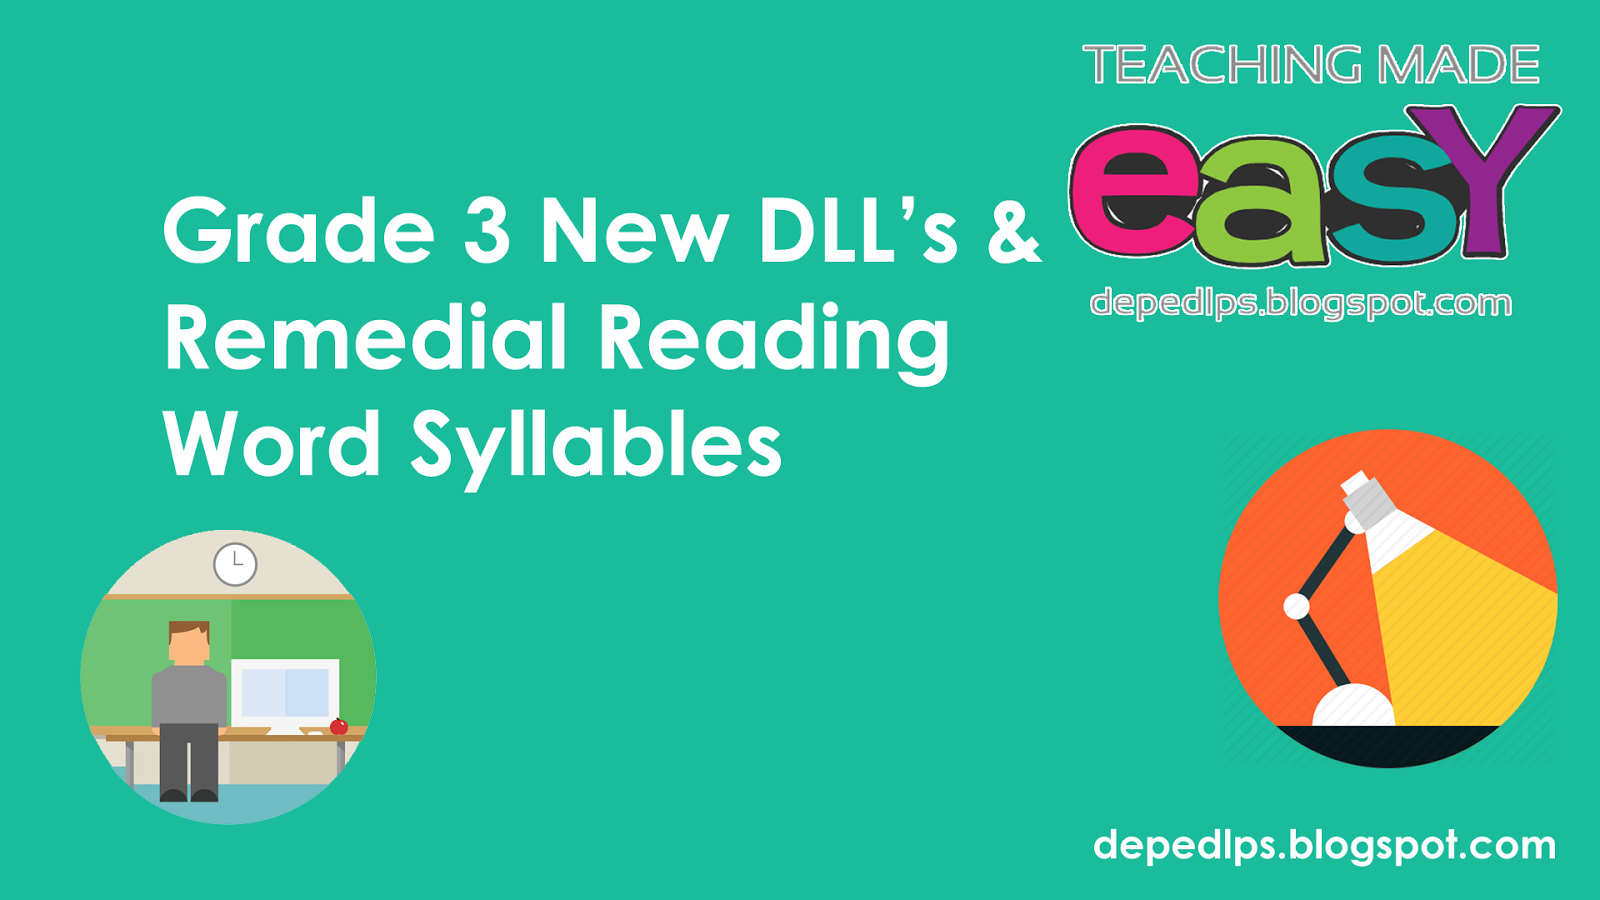 Worksheet Grade 3 grade 3 new k 12 dlls remedial reading word syllables deped lps syllables